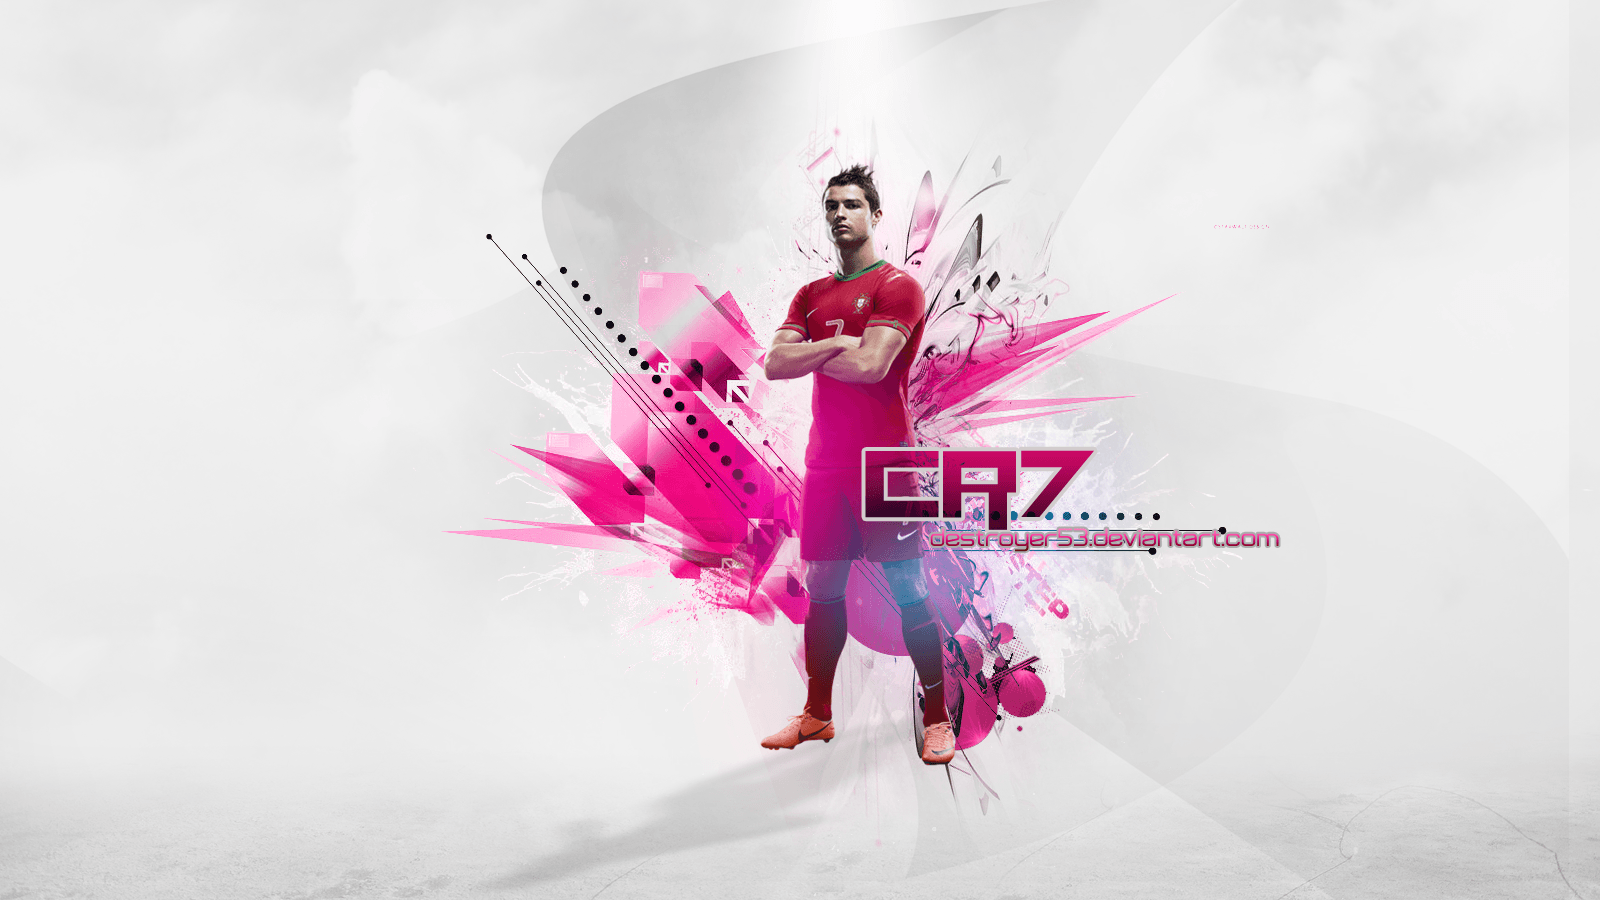 cr7 wallpapers wallpaper cave